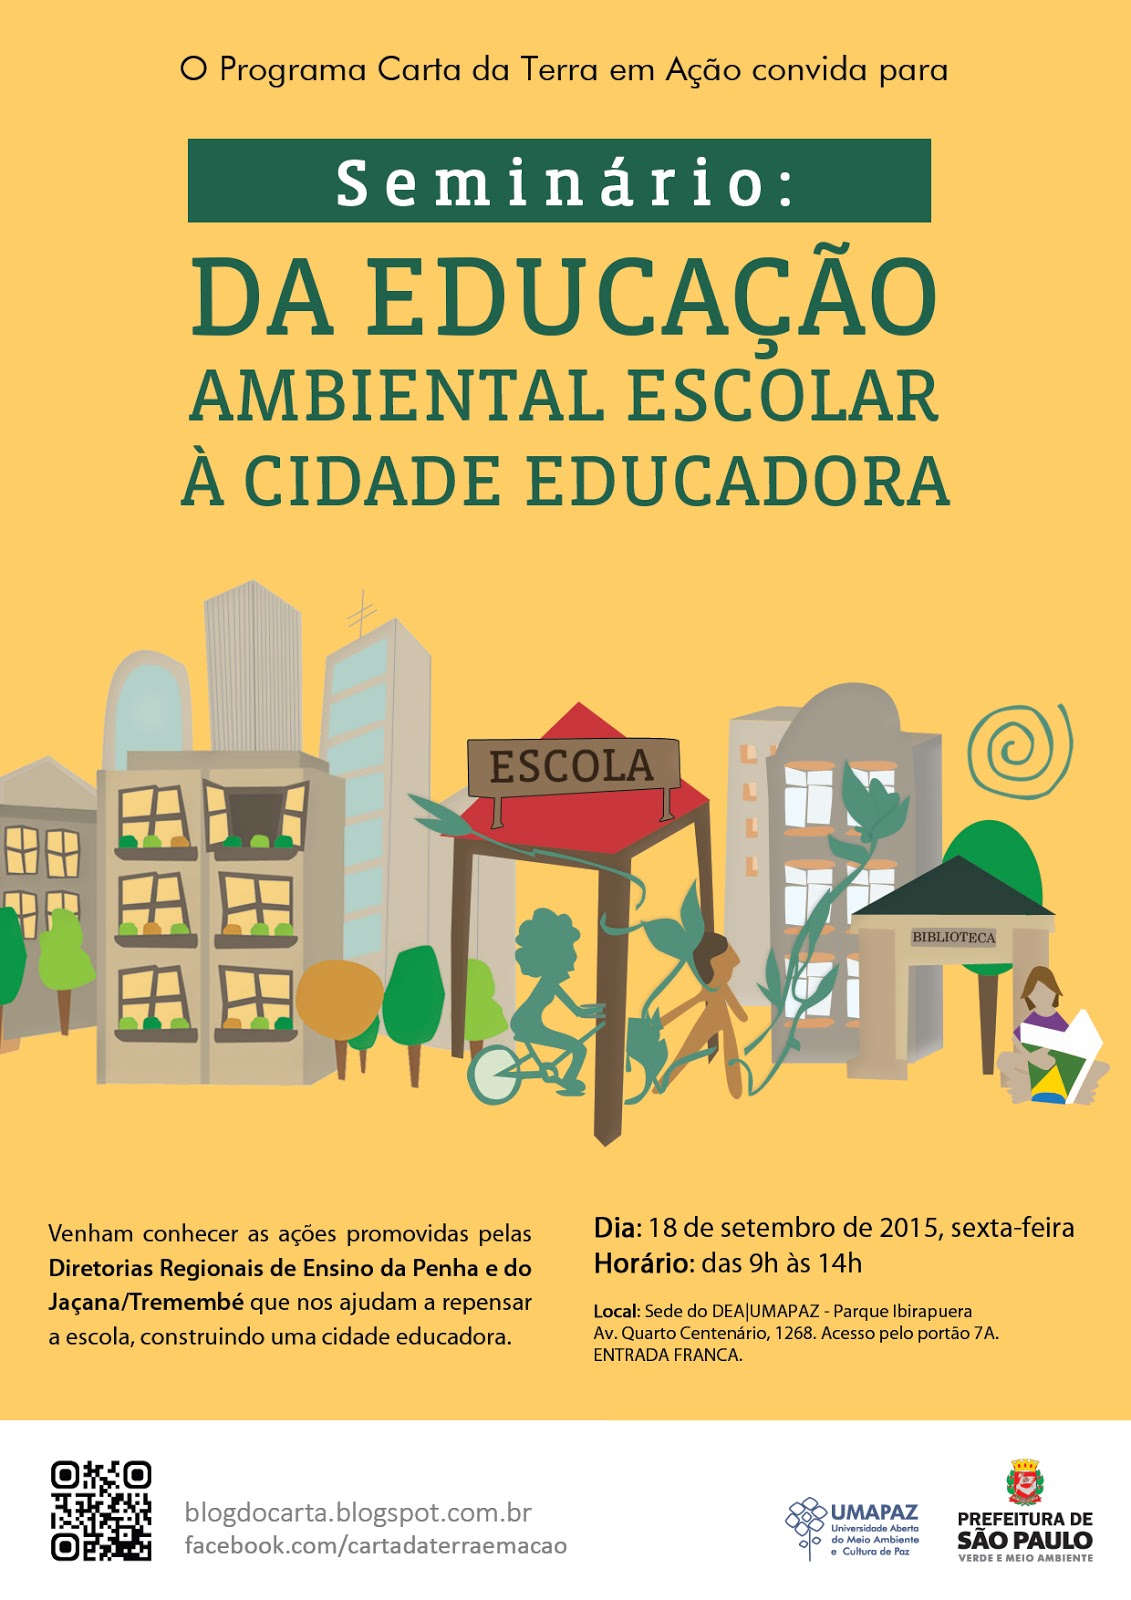 Seminario de Educacao Integral do Carta da Terra A4 QR Code